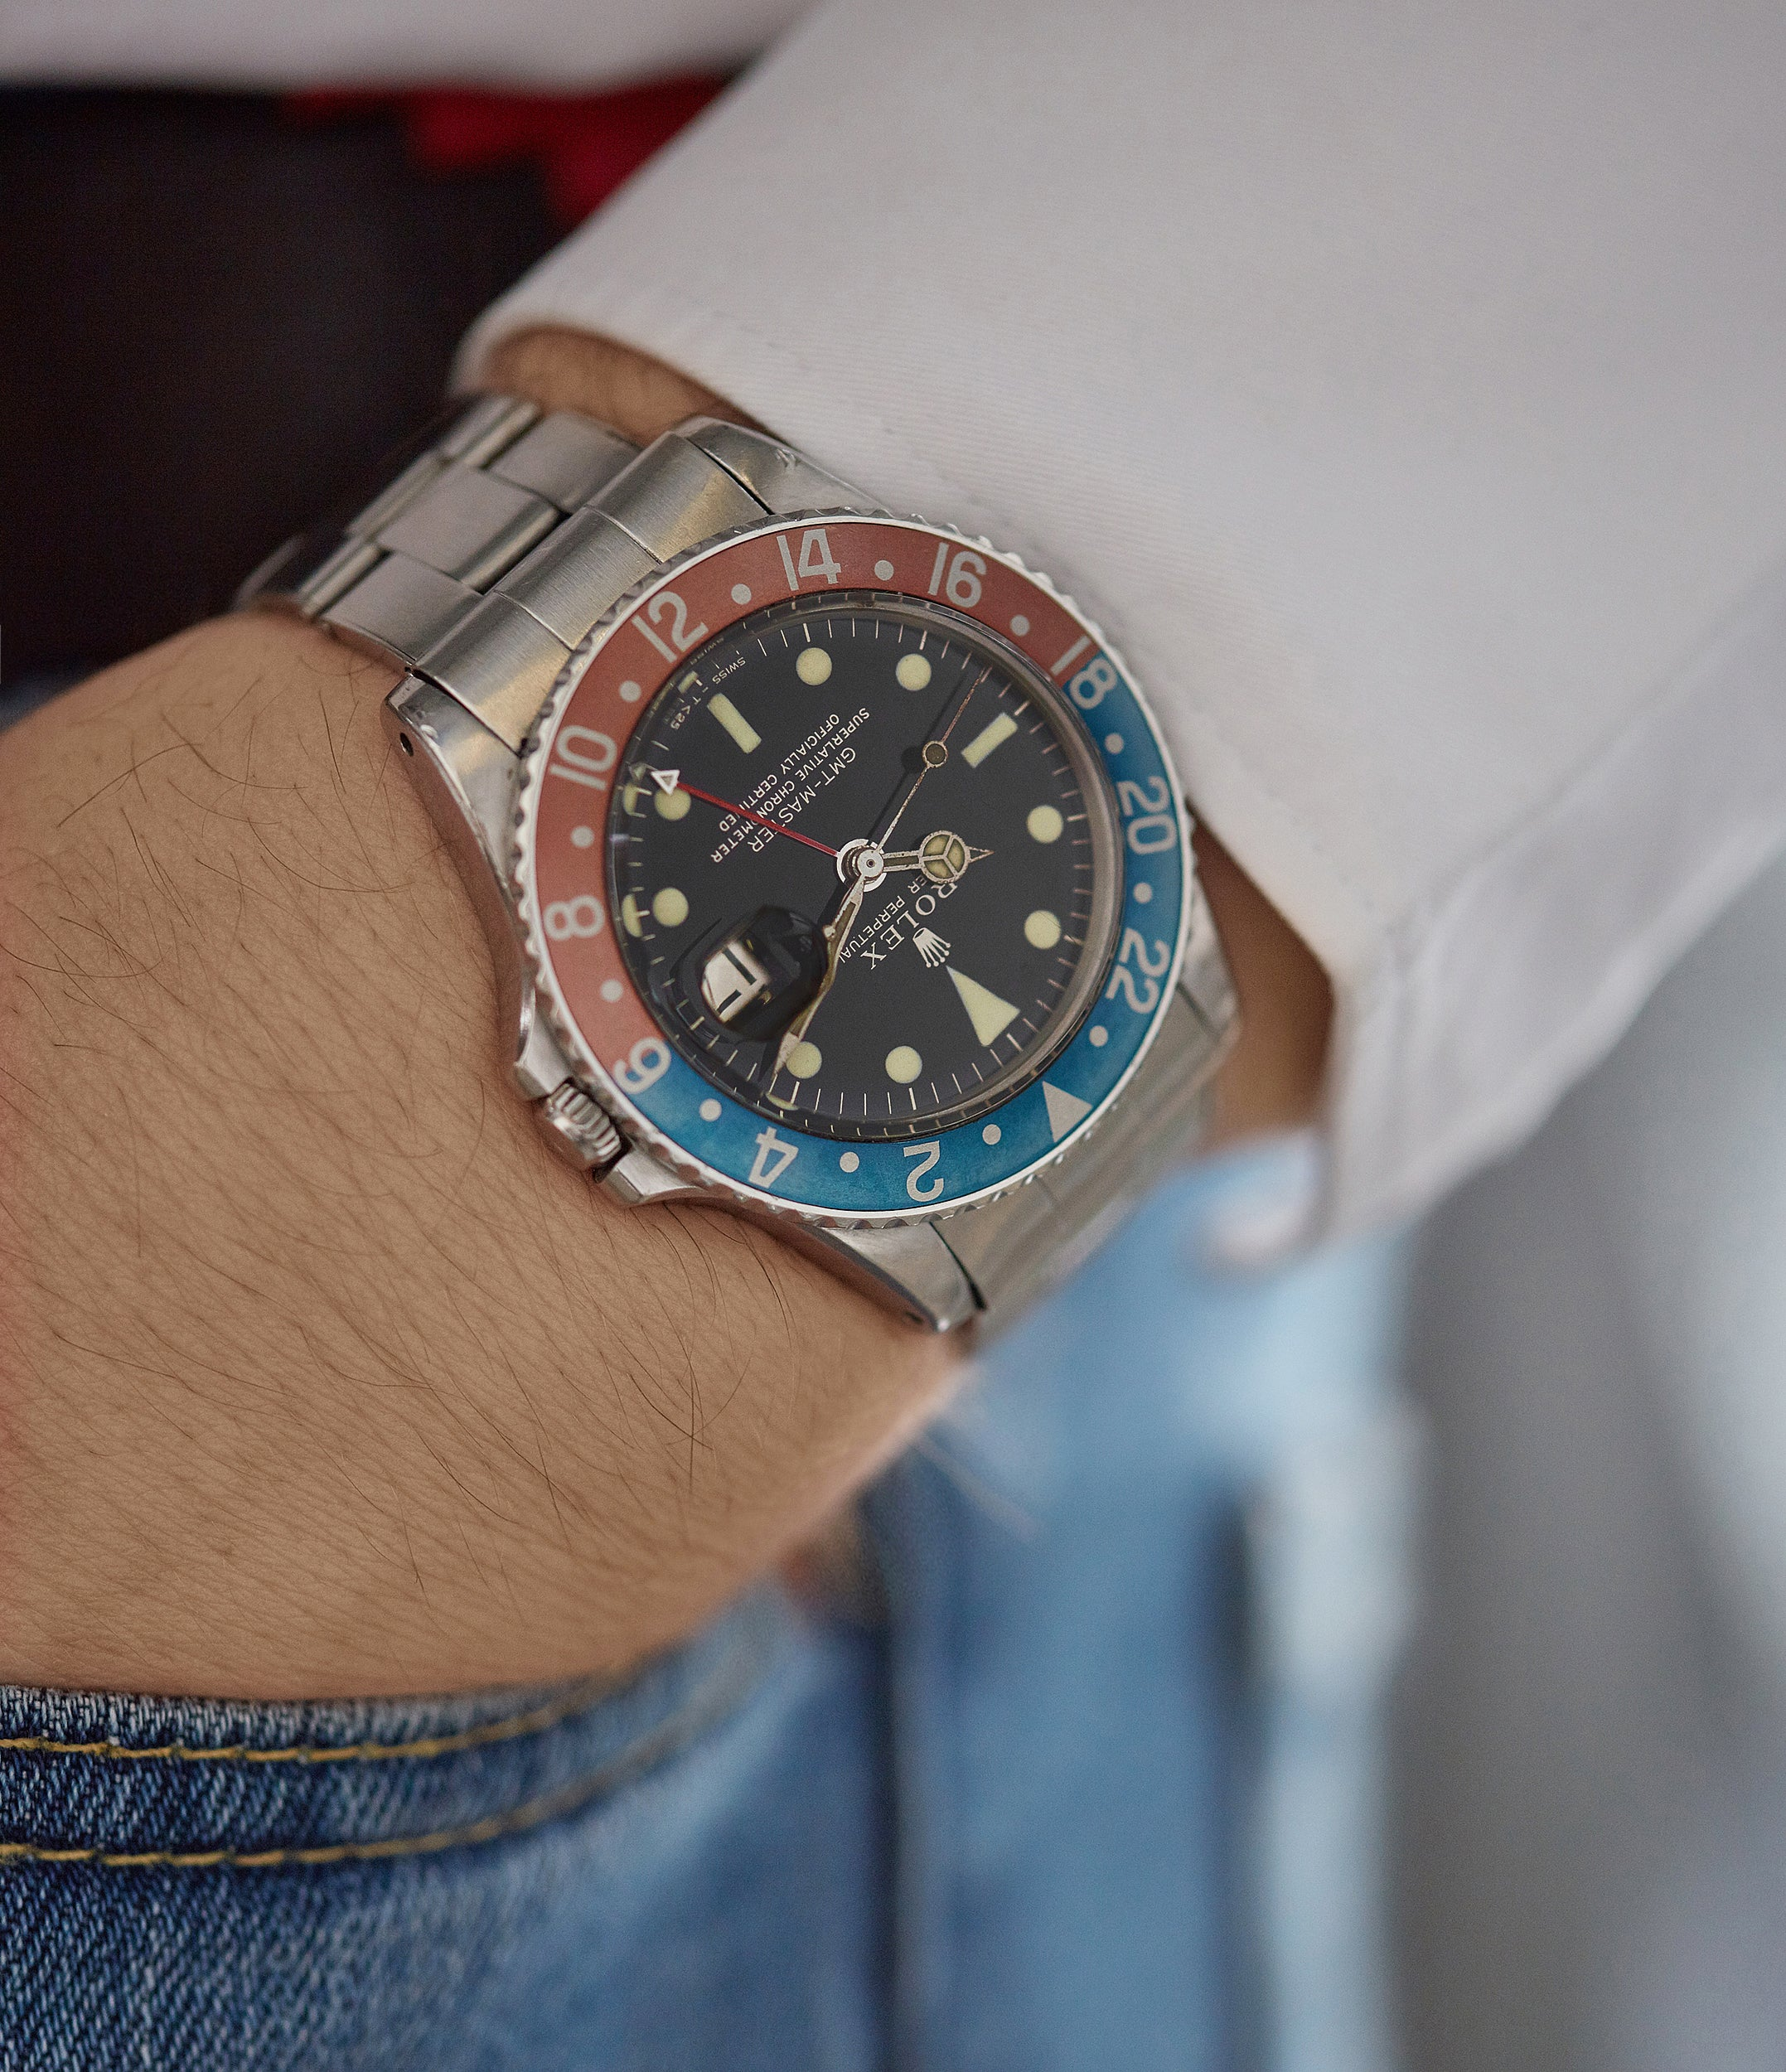 rare vintage wristwatch Rolex GMT-Master 1675 Gilt dial full set sports watch for sale online at A Collected Man London UK specialist of rare watches